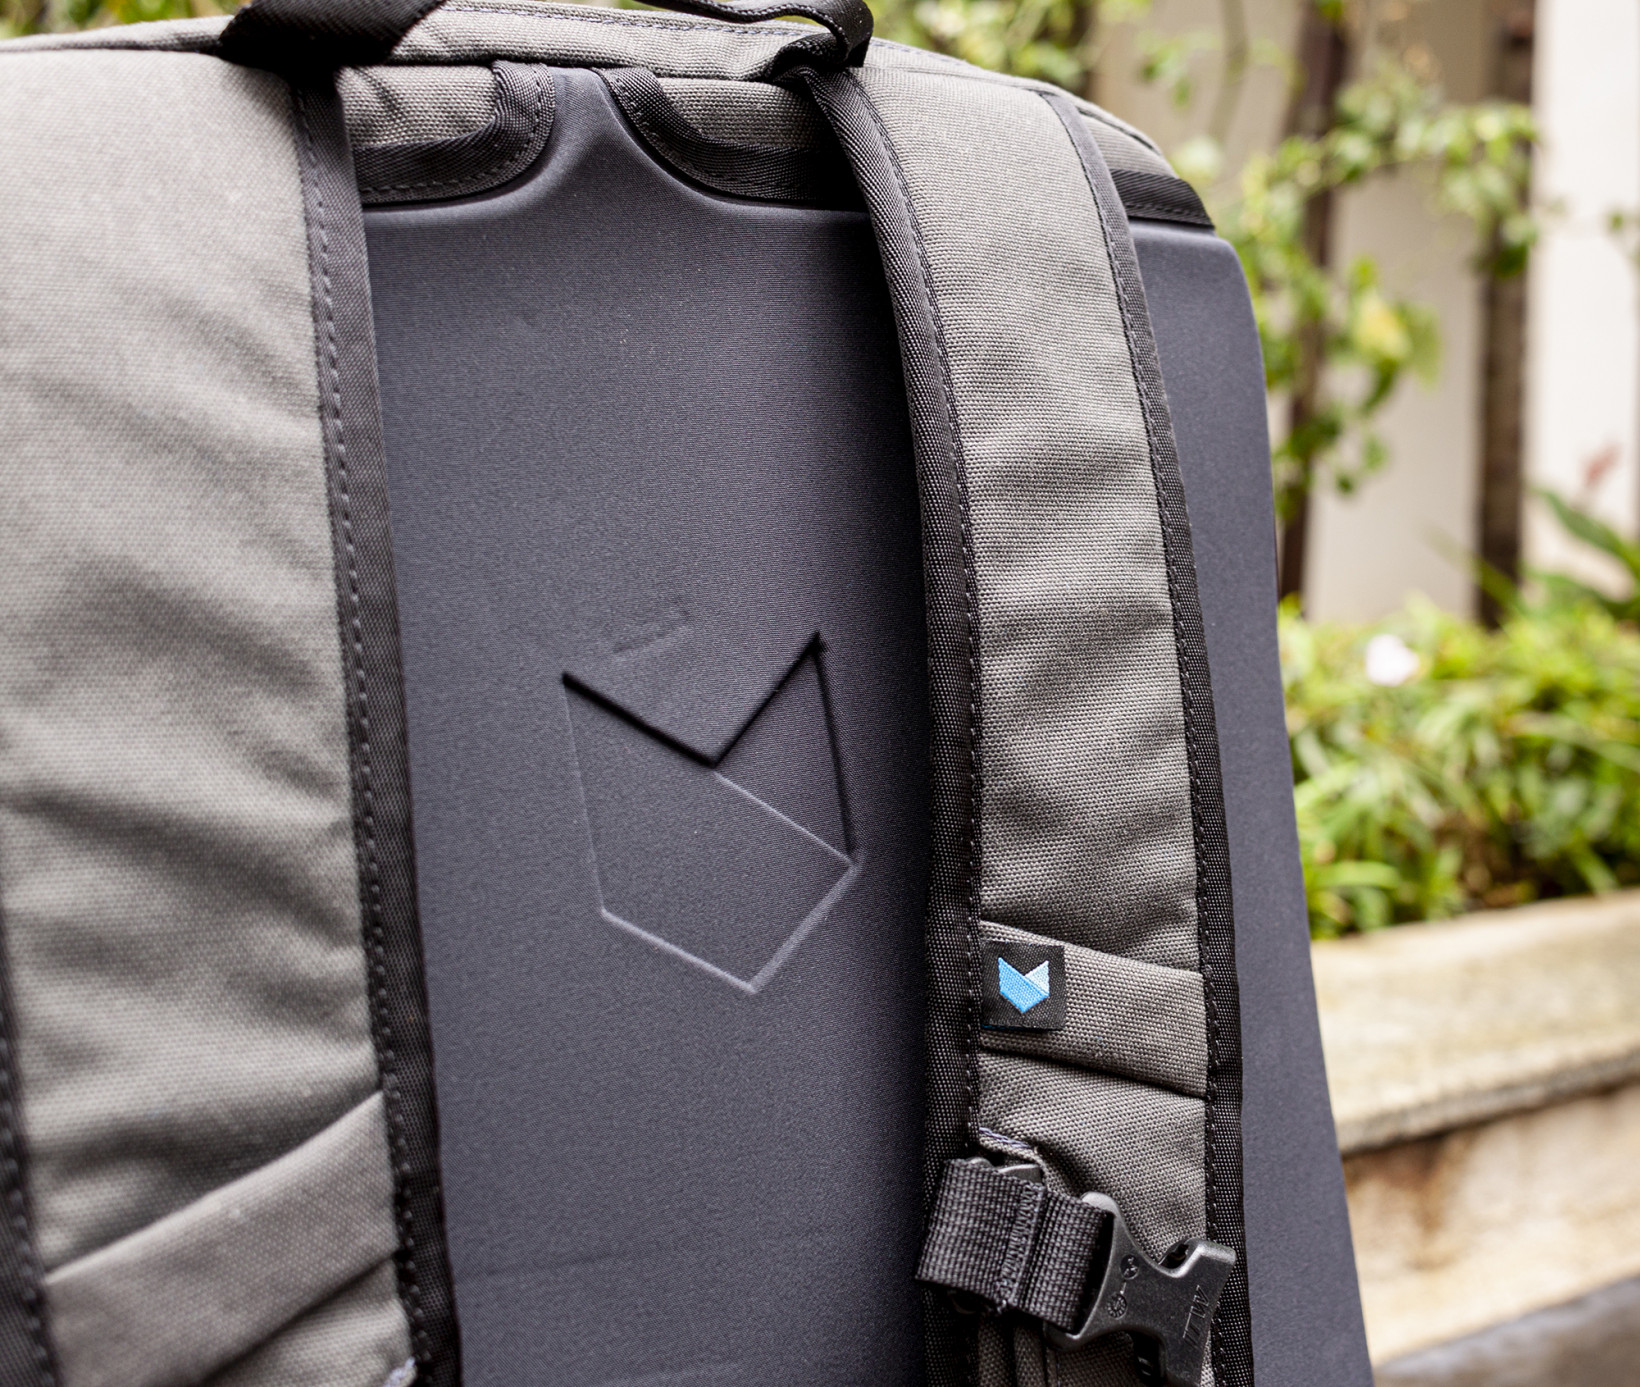 The Daily's rear panel has slots on top for stowing away the shoulder straps entirely; too bad it's not ventilated